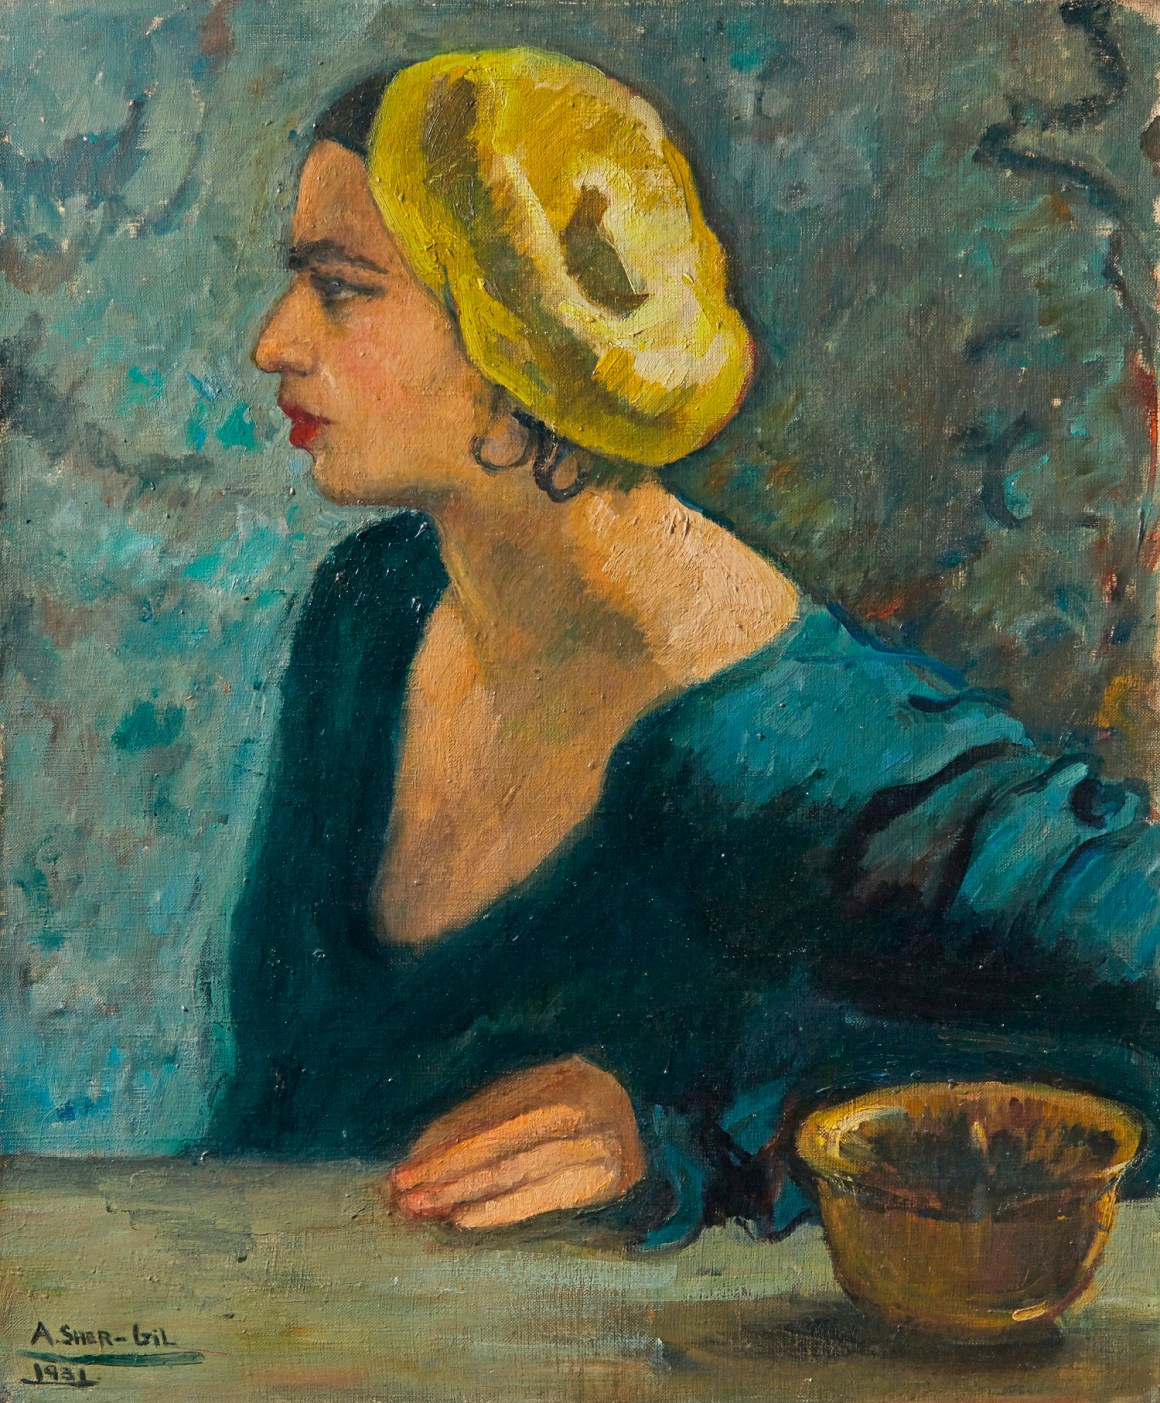 A work by Amrita Sher-Gil